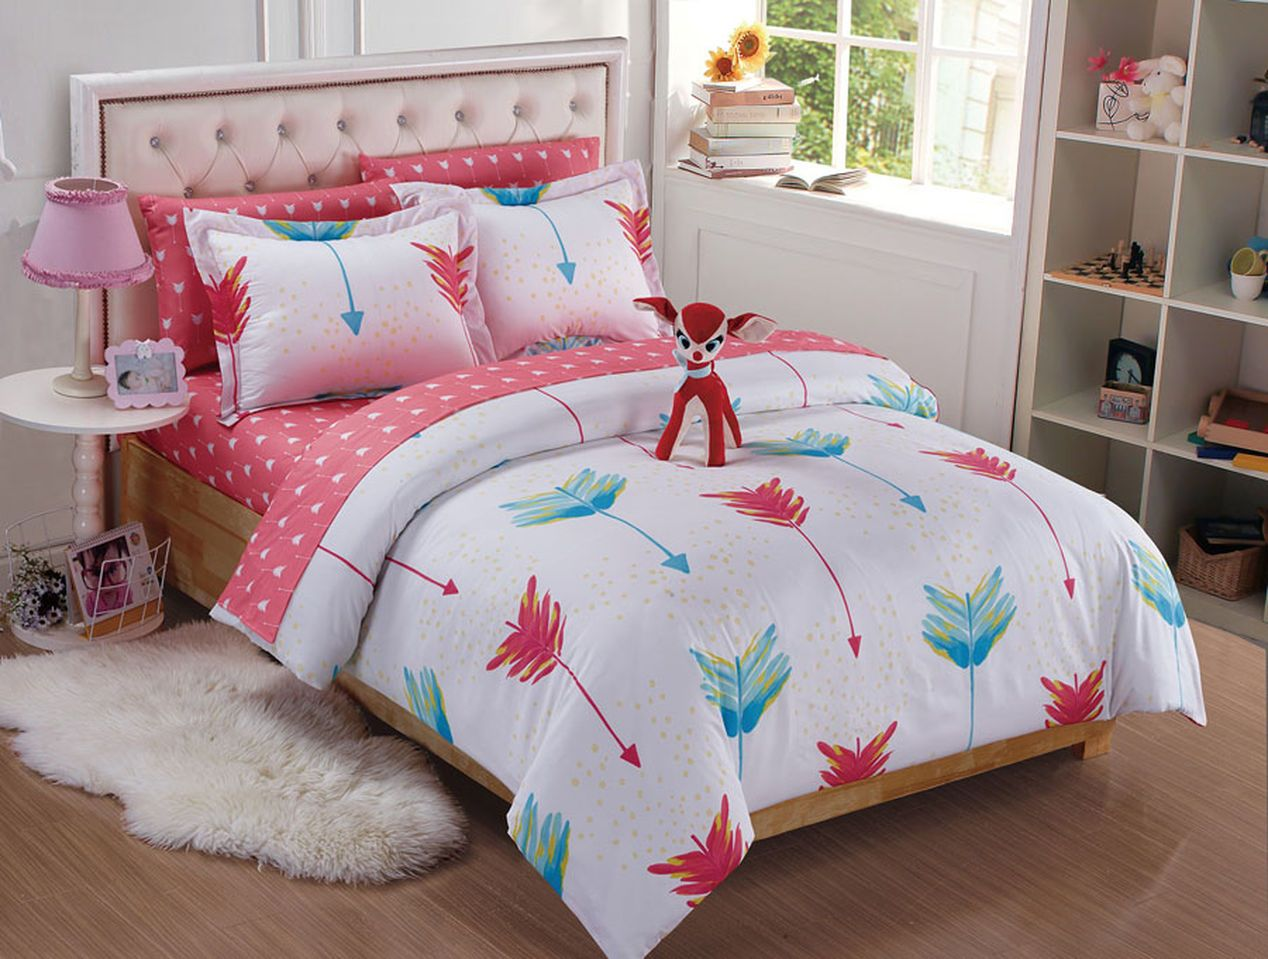 Firefly 8pc full bedding set corinne 39 s big girl room - Complete bedroom sets with mattress ...